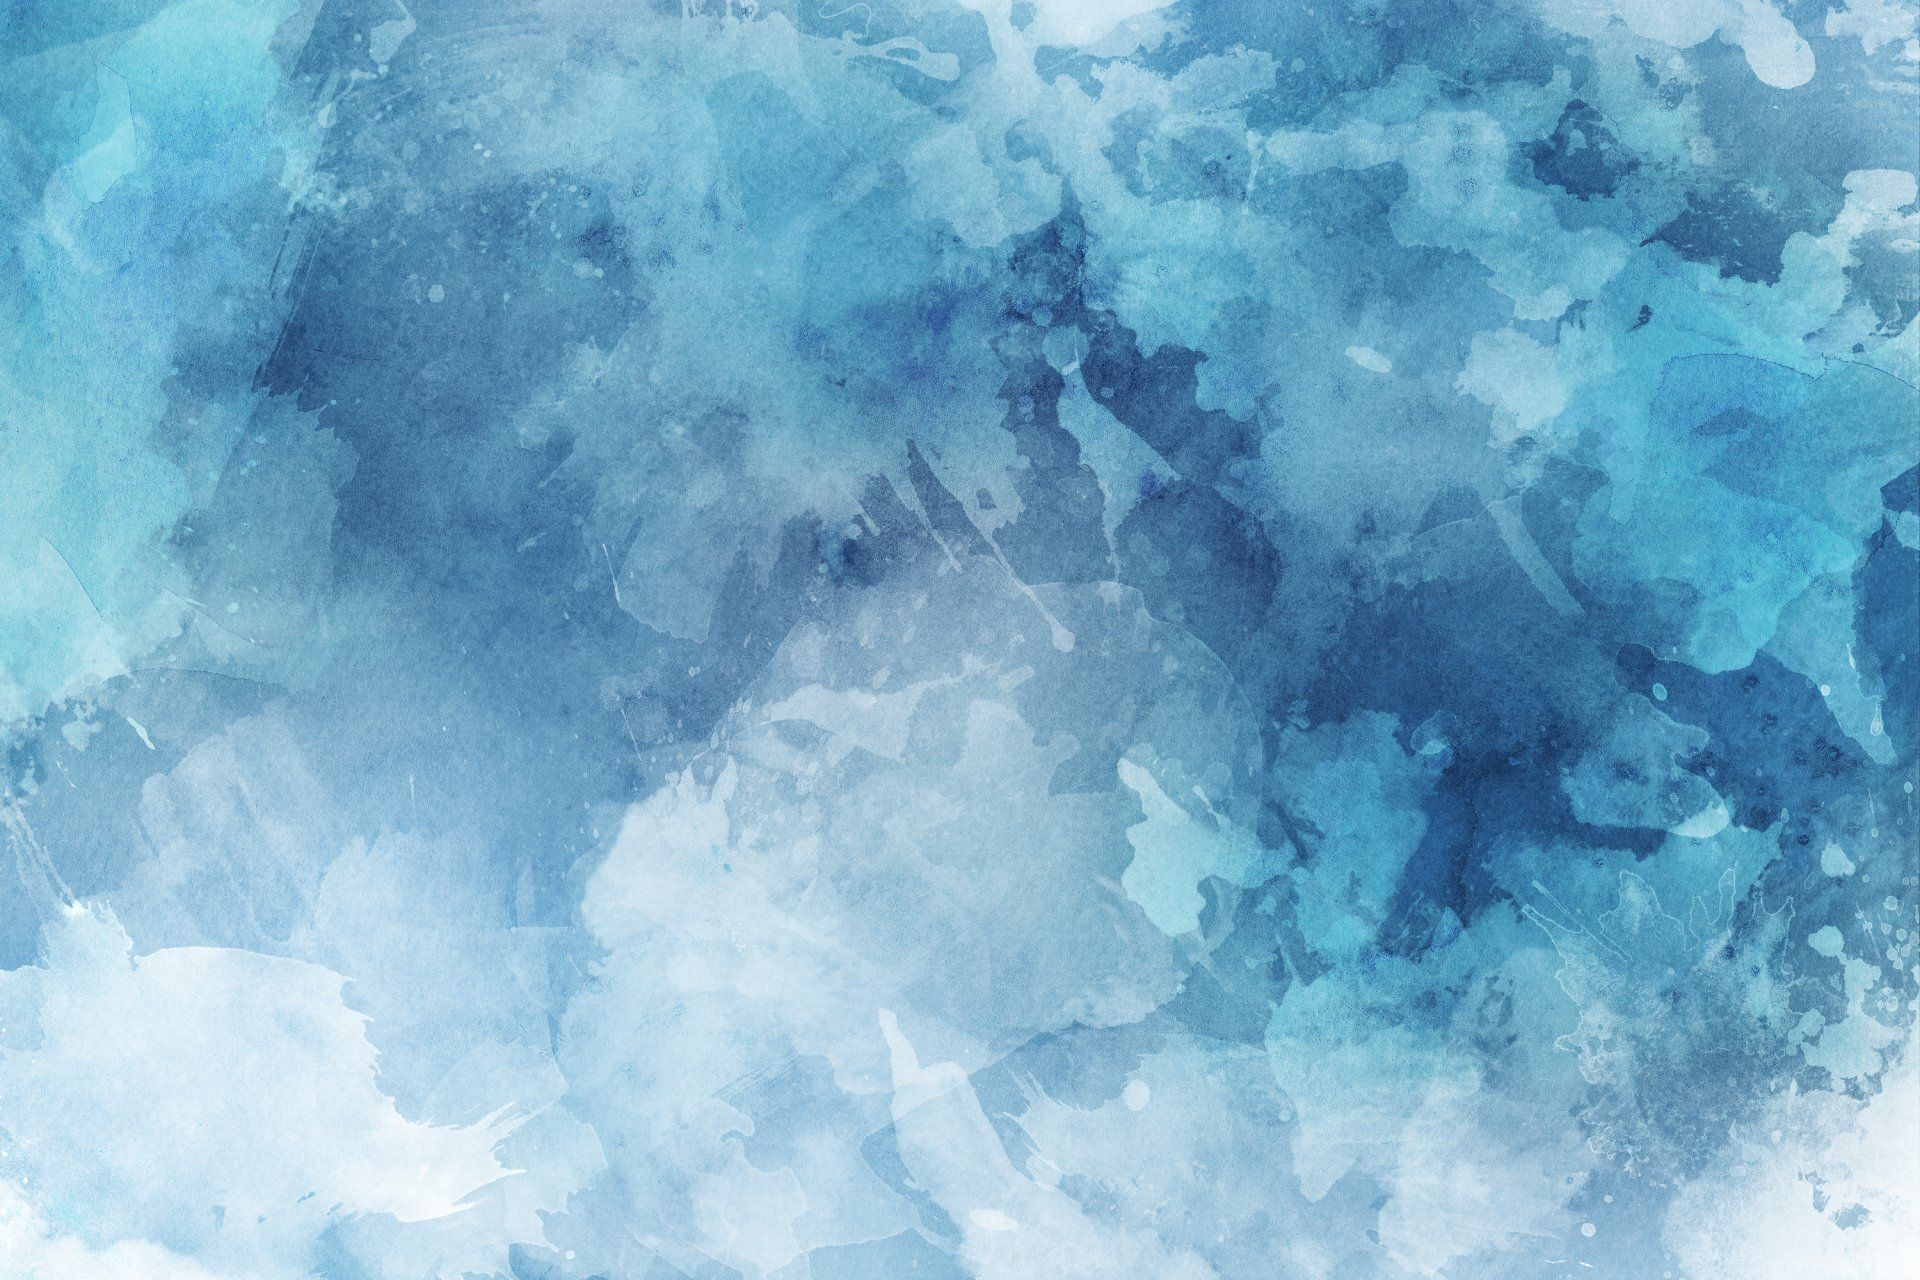 Vibrant Blue Watercolor Painting Background Free Image By